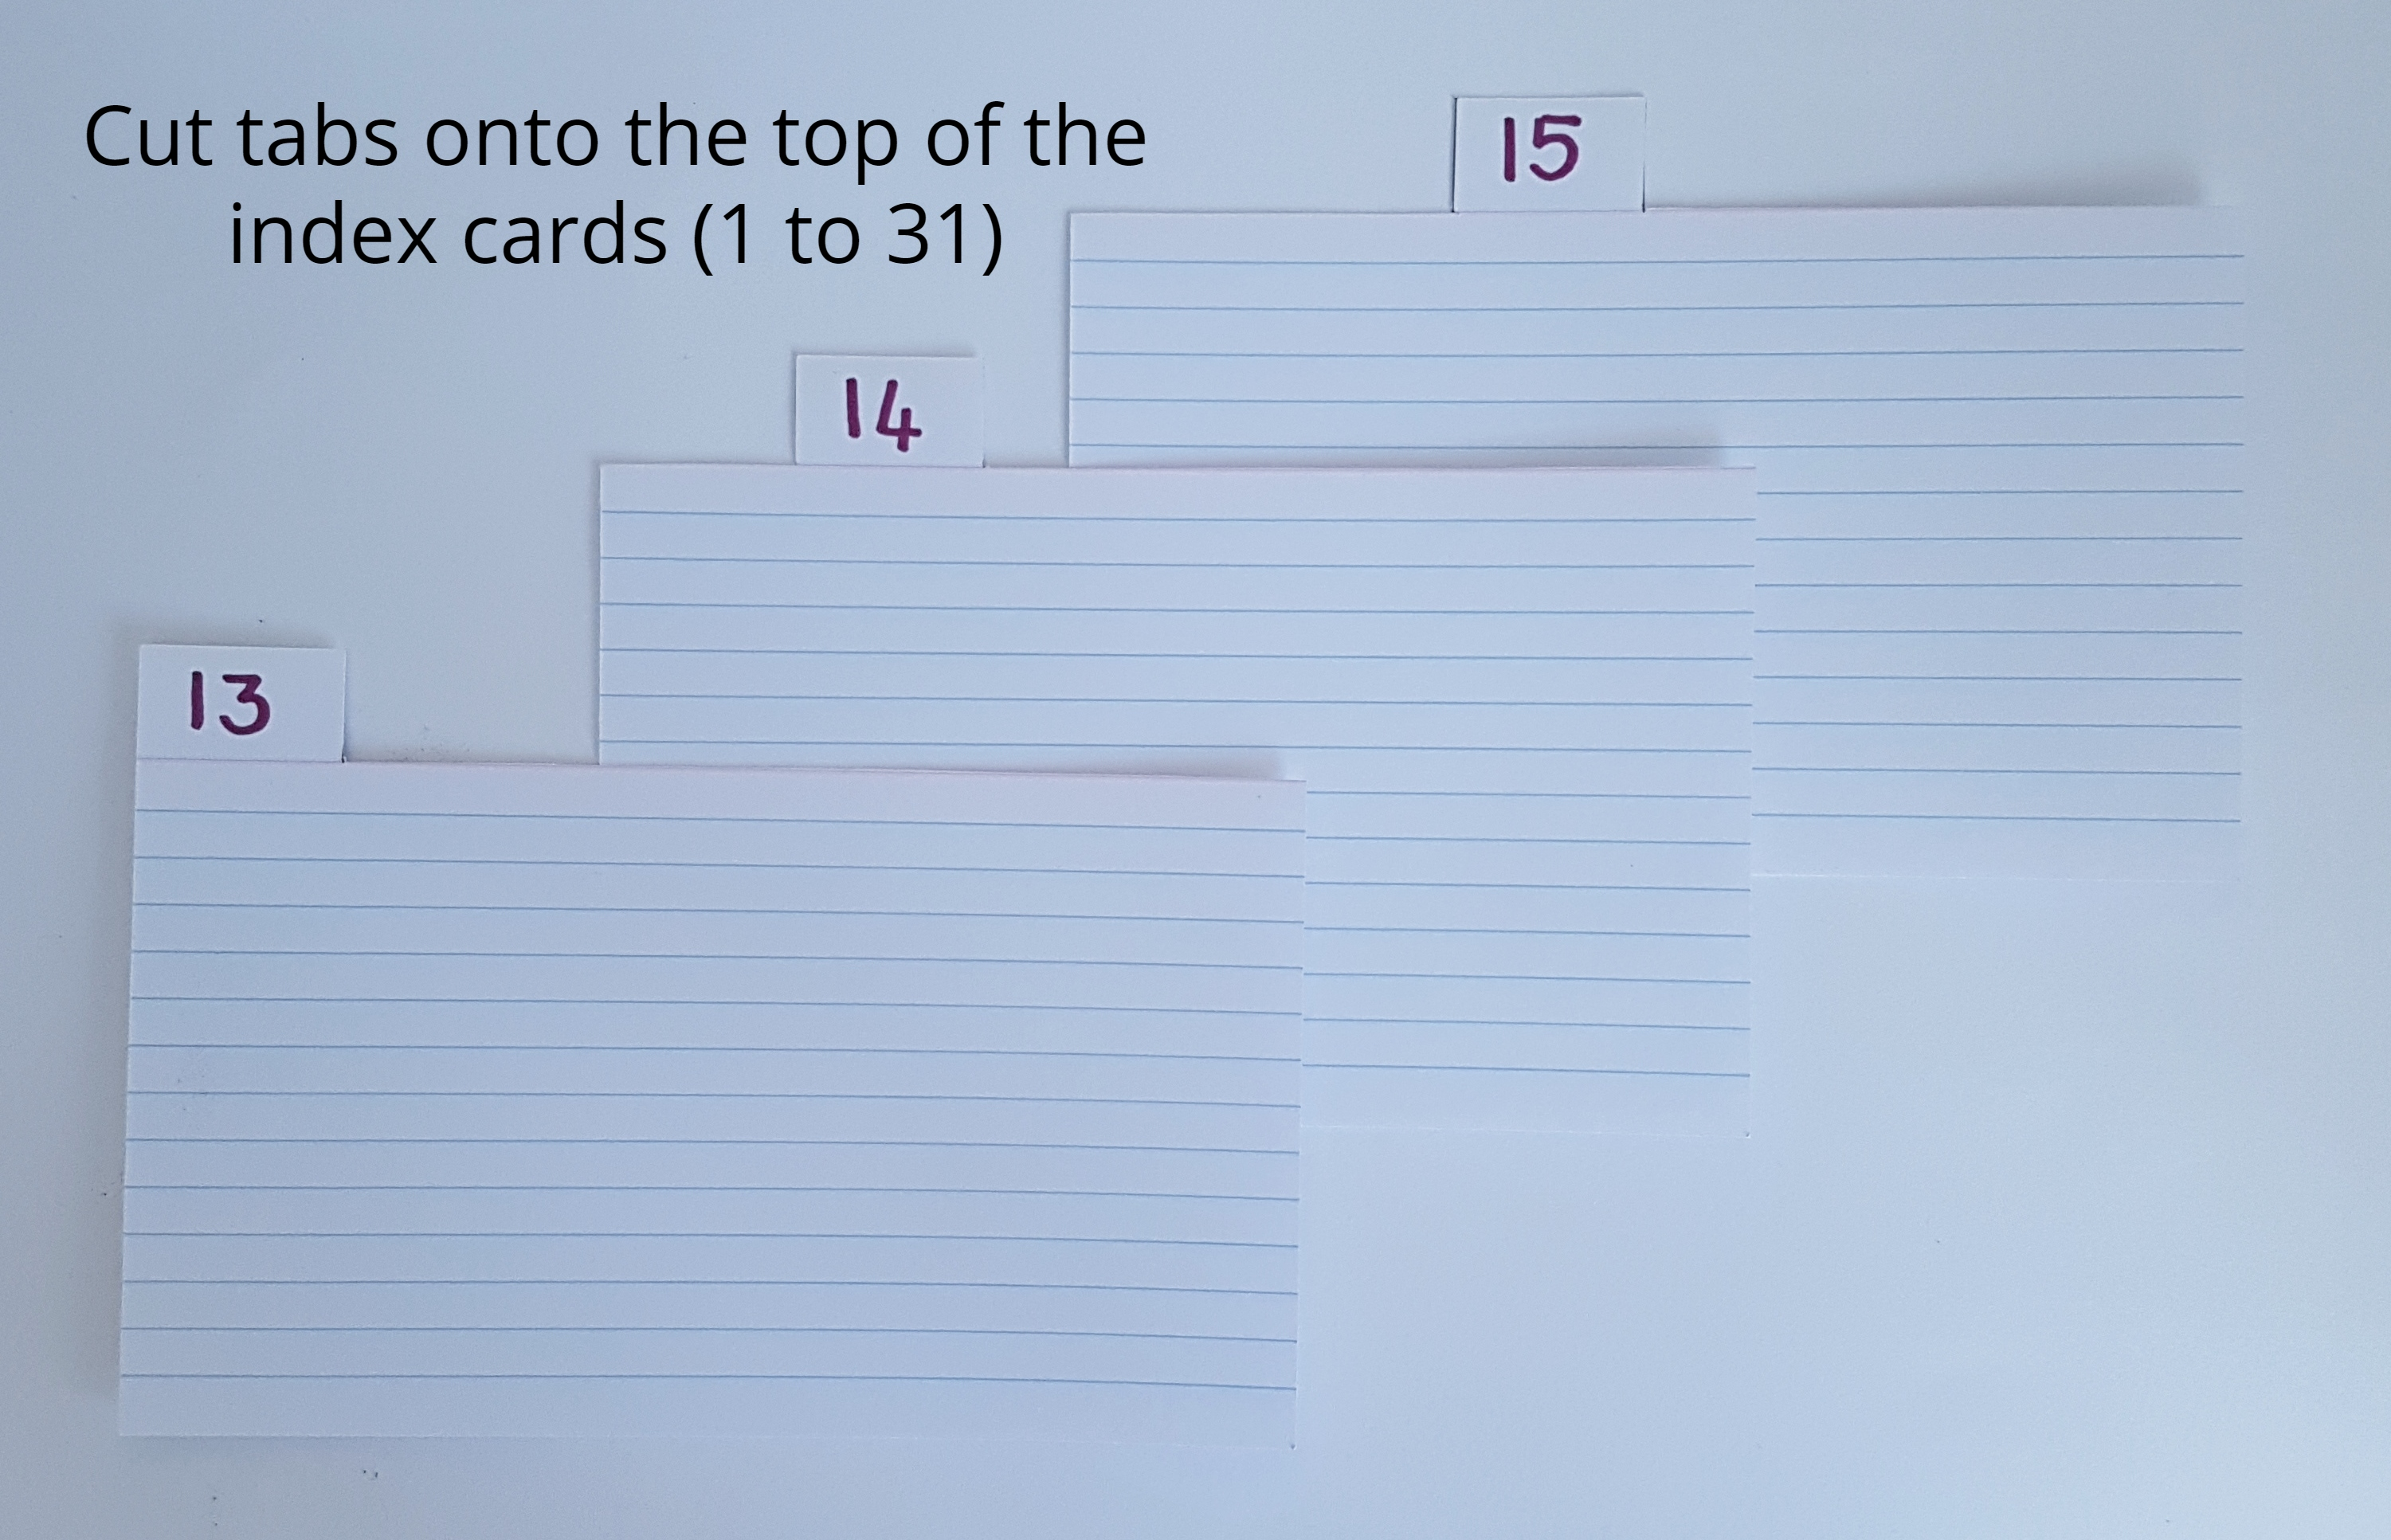 Image to demonstrate how to cut the tabs into the index cards